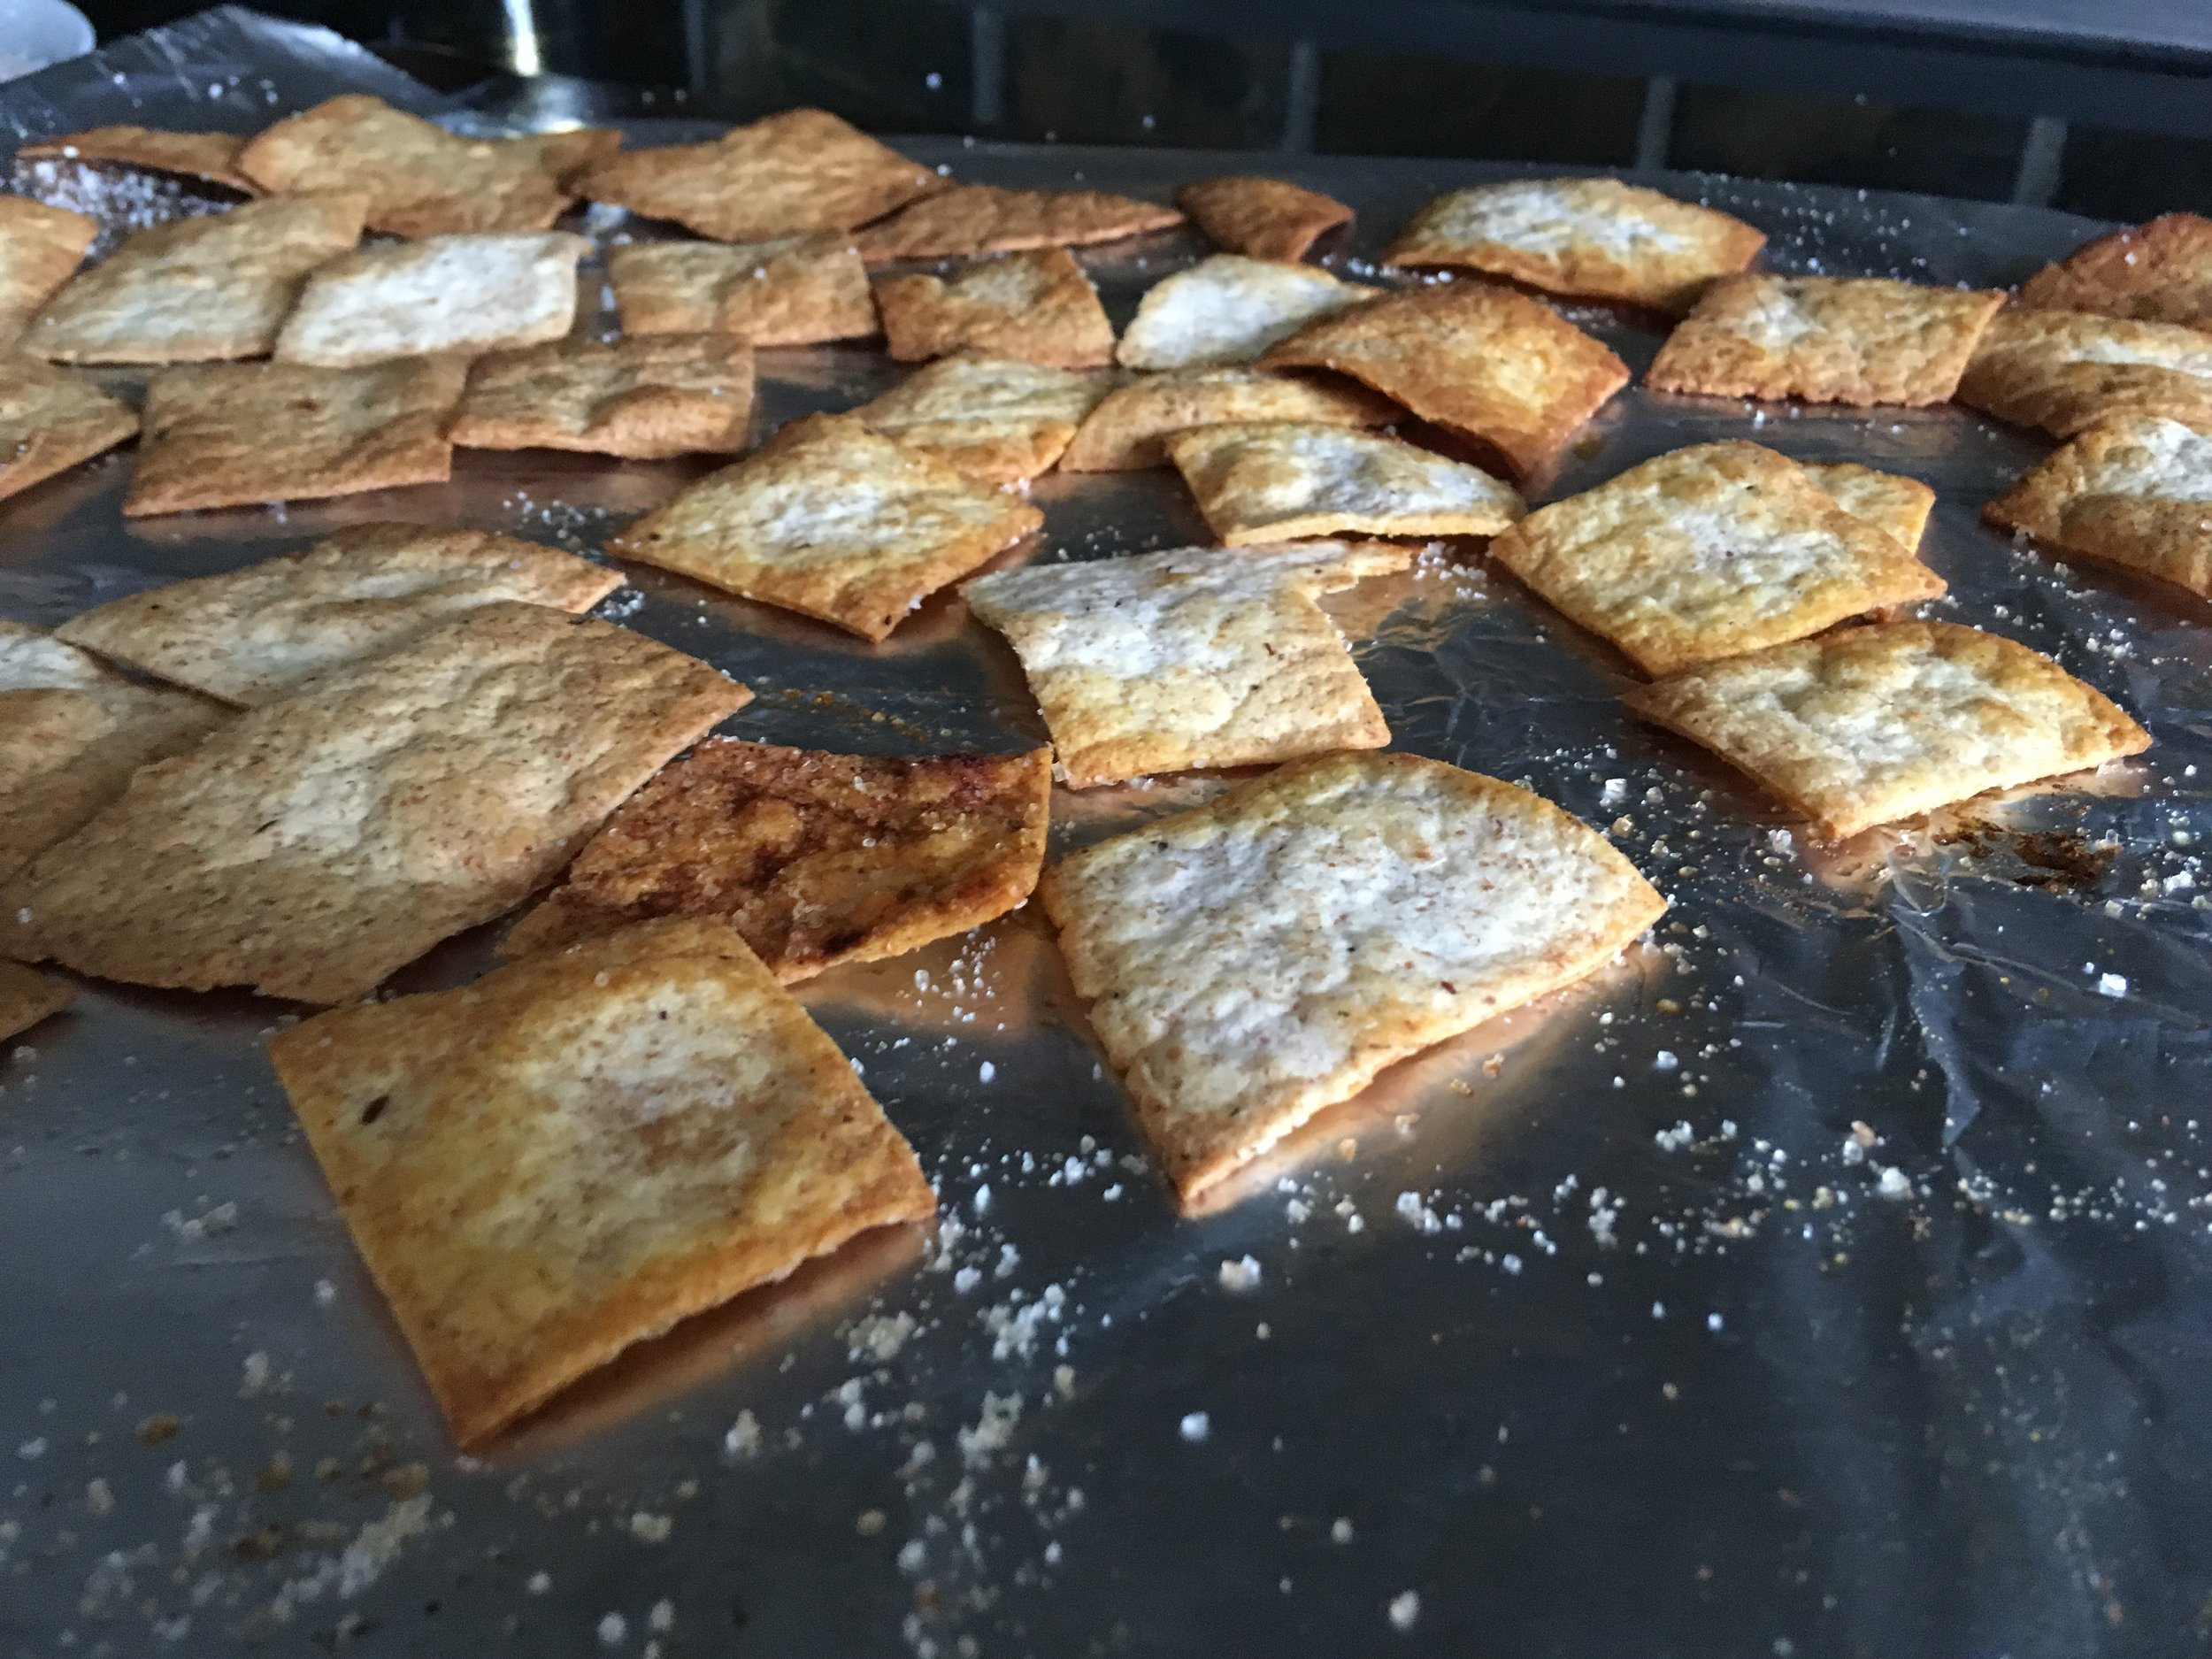 Bake - Bake at 400 degrees for 5 minutes and flip the chips. Bake for 1-2 more minutes.